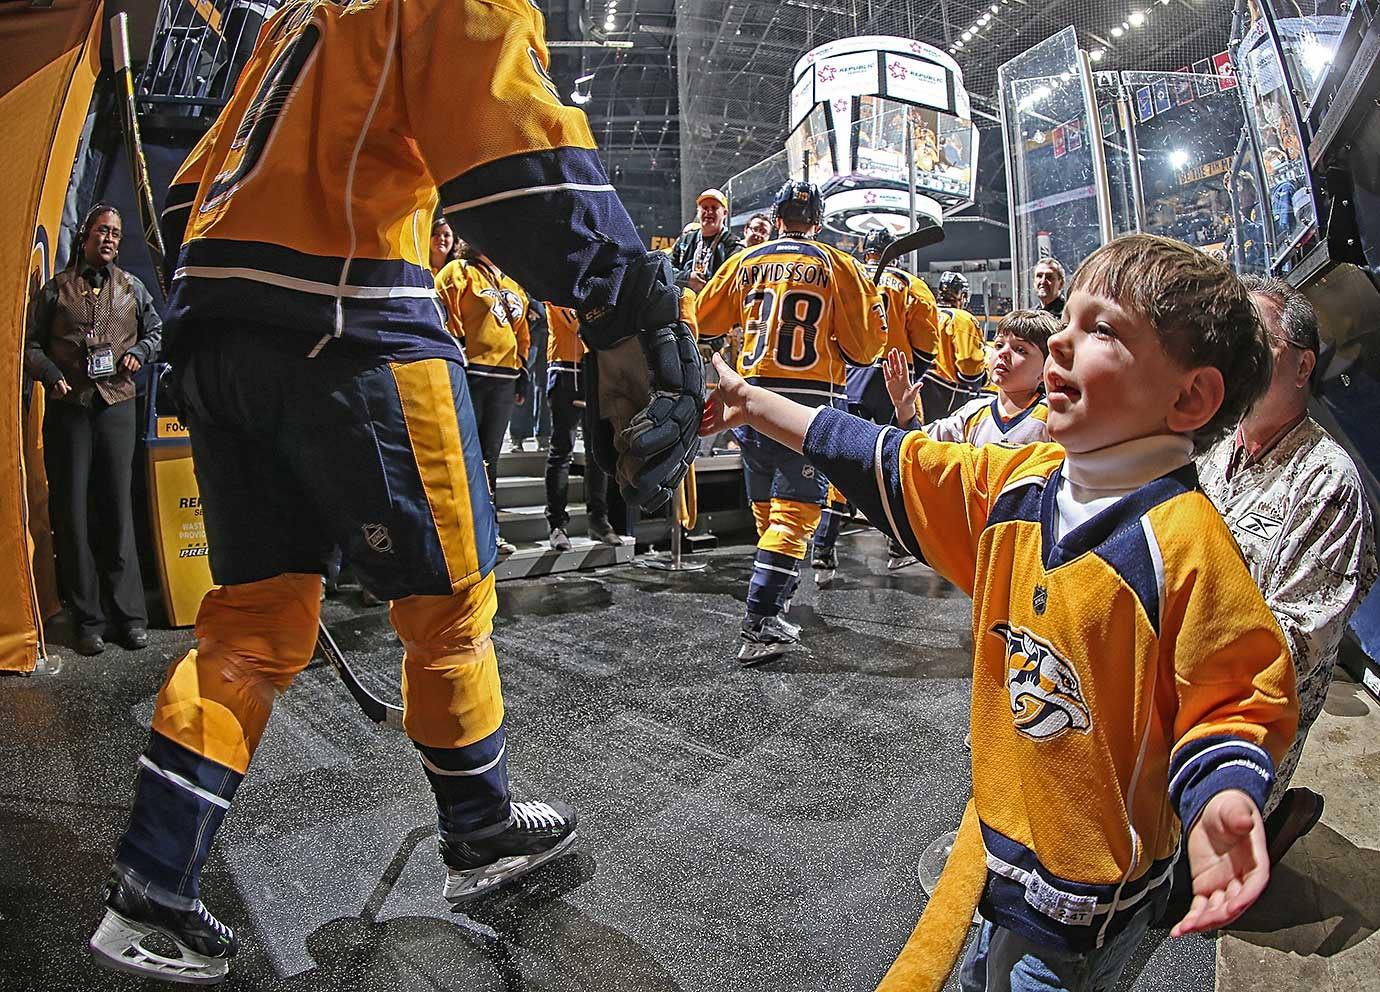 A young fan taps the glove of Filip Forsberg of the Nashville Predators prior to a game against Dallas.